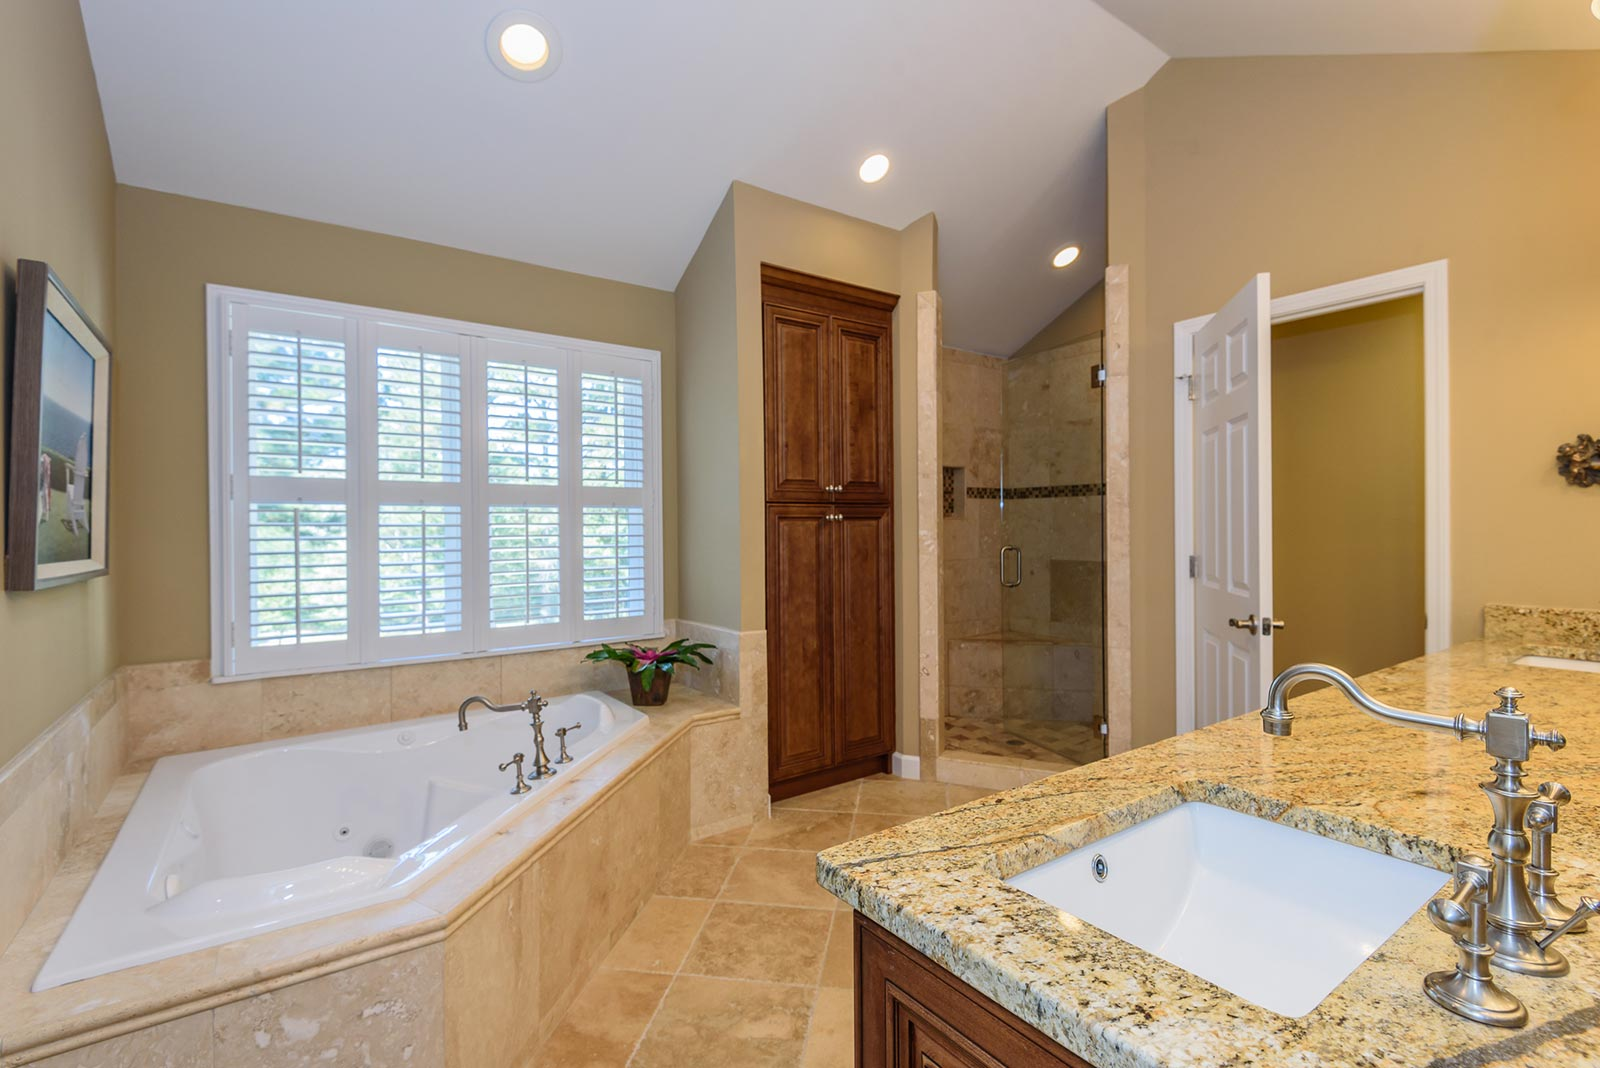 Master bathroom with garden tub